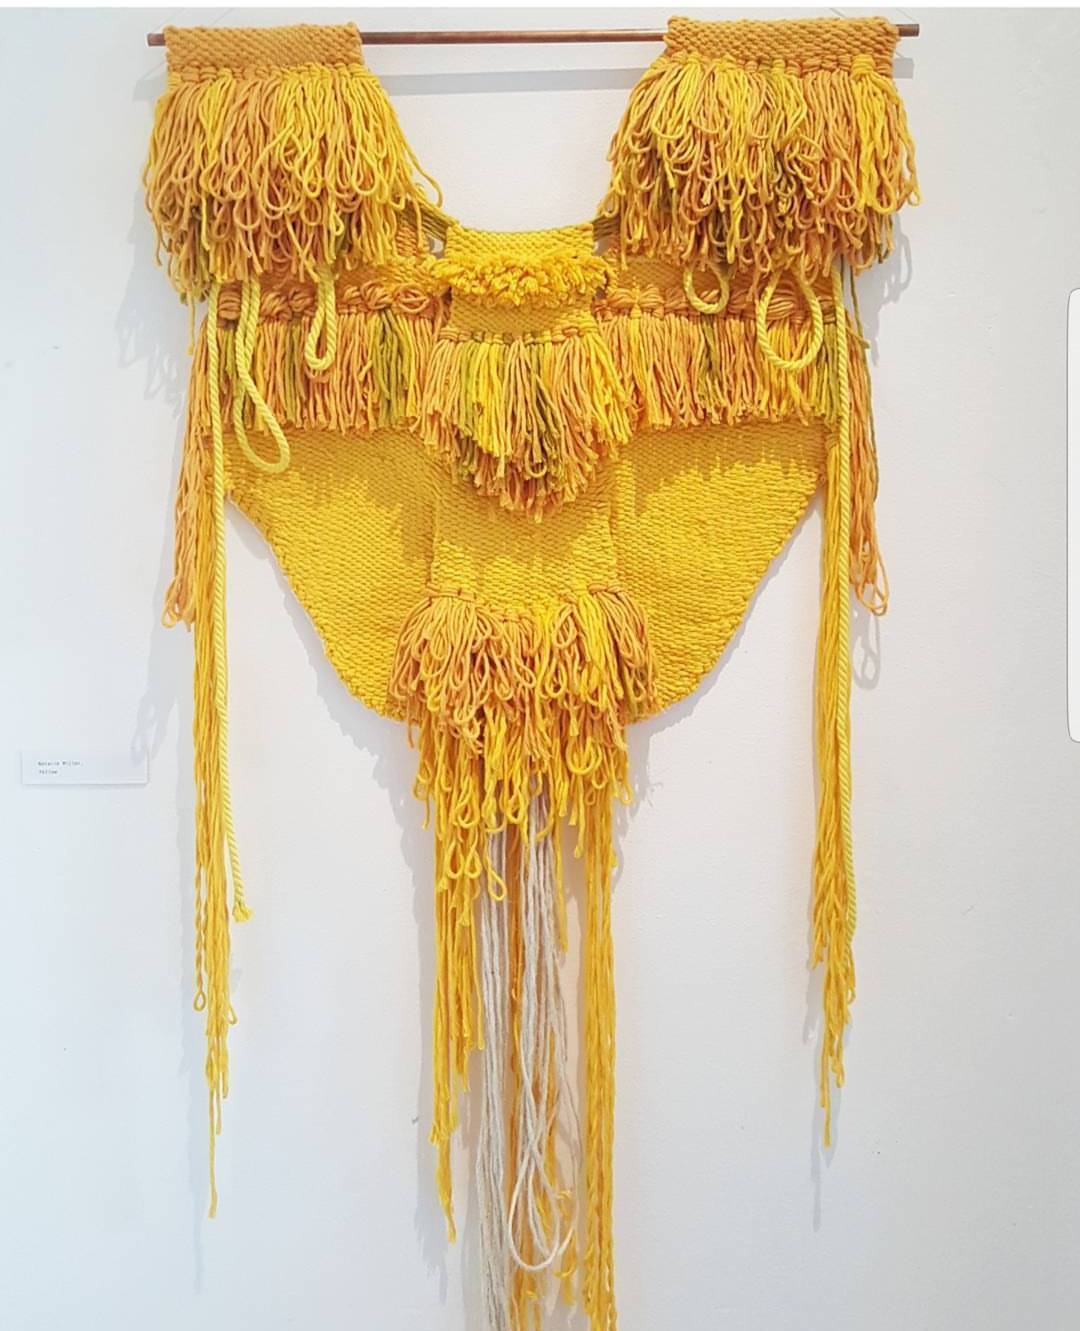 Featured Fiber Artist: Natalie Miller on Modern Macramé